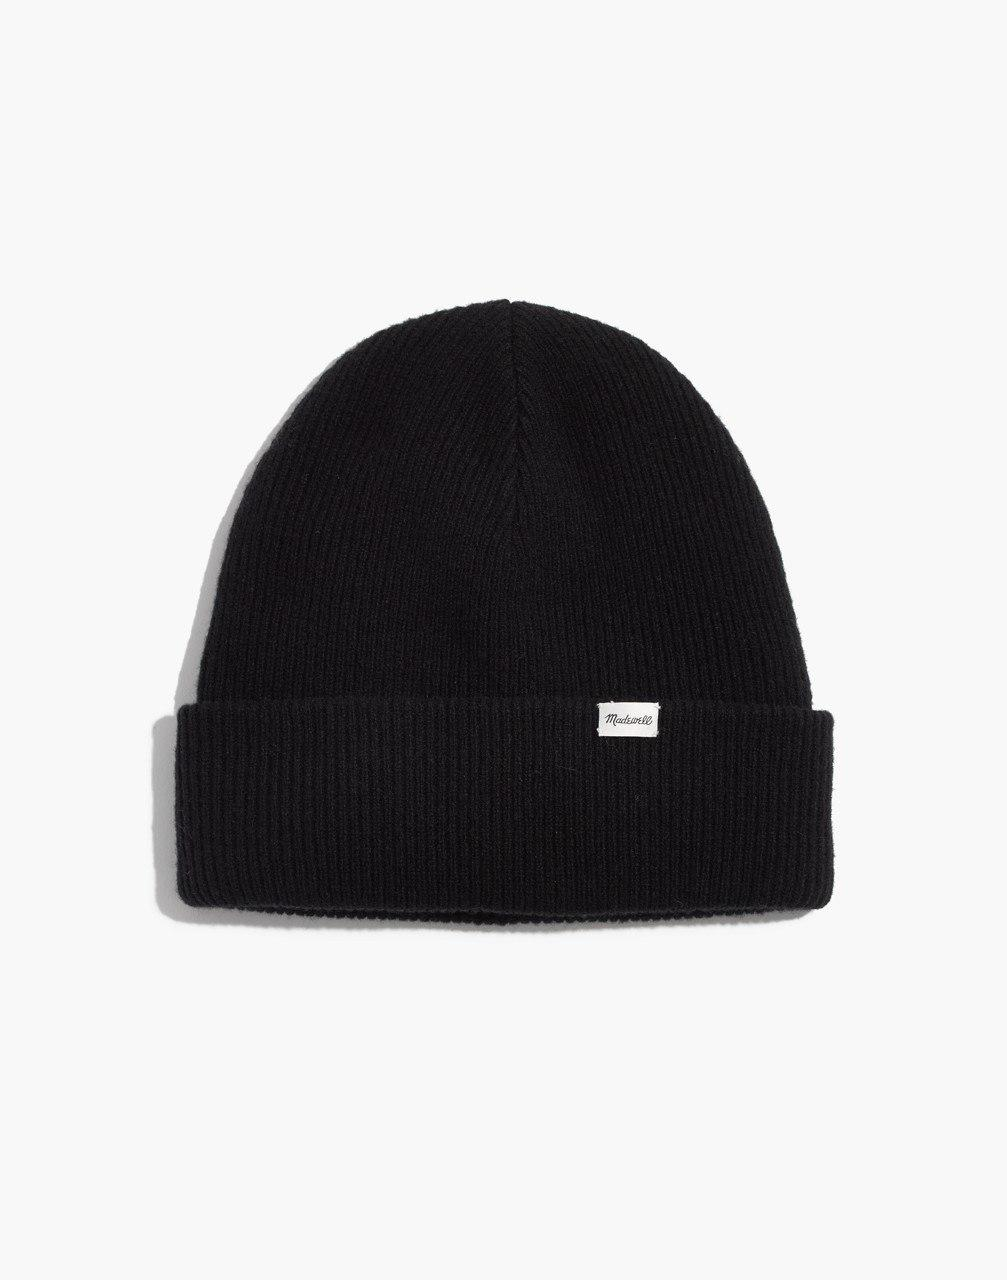 Lyst - Madewell Cuffed Cozy-knit Beanie in Black d9a51f8e1bc1